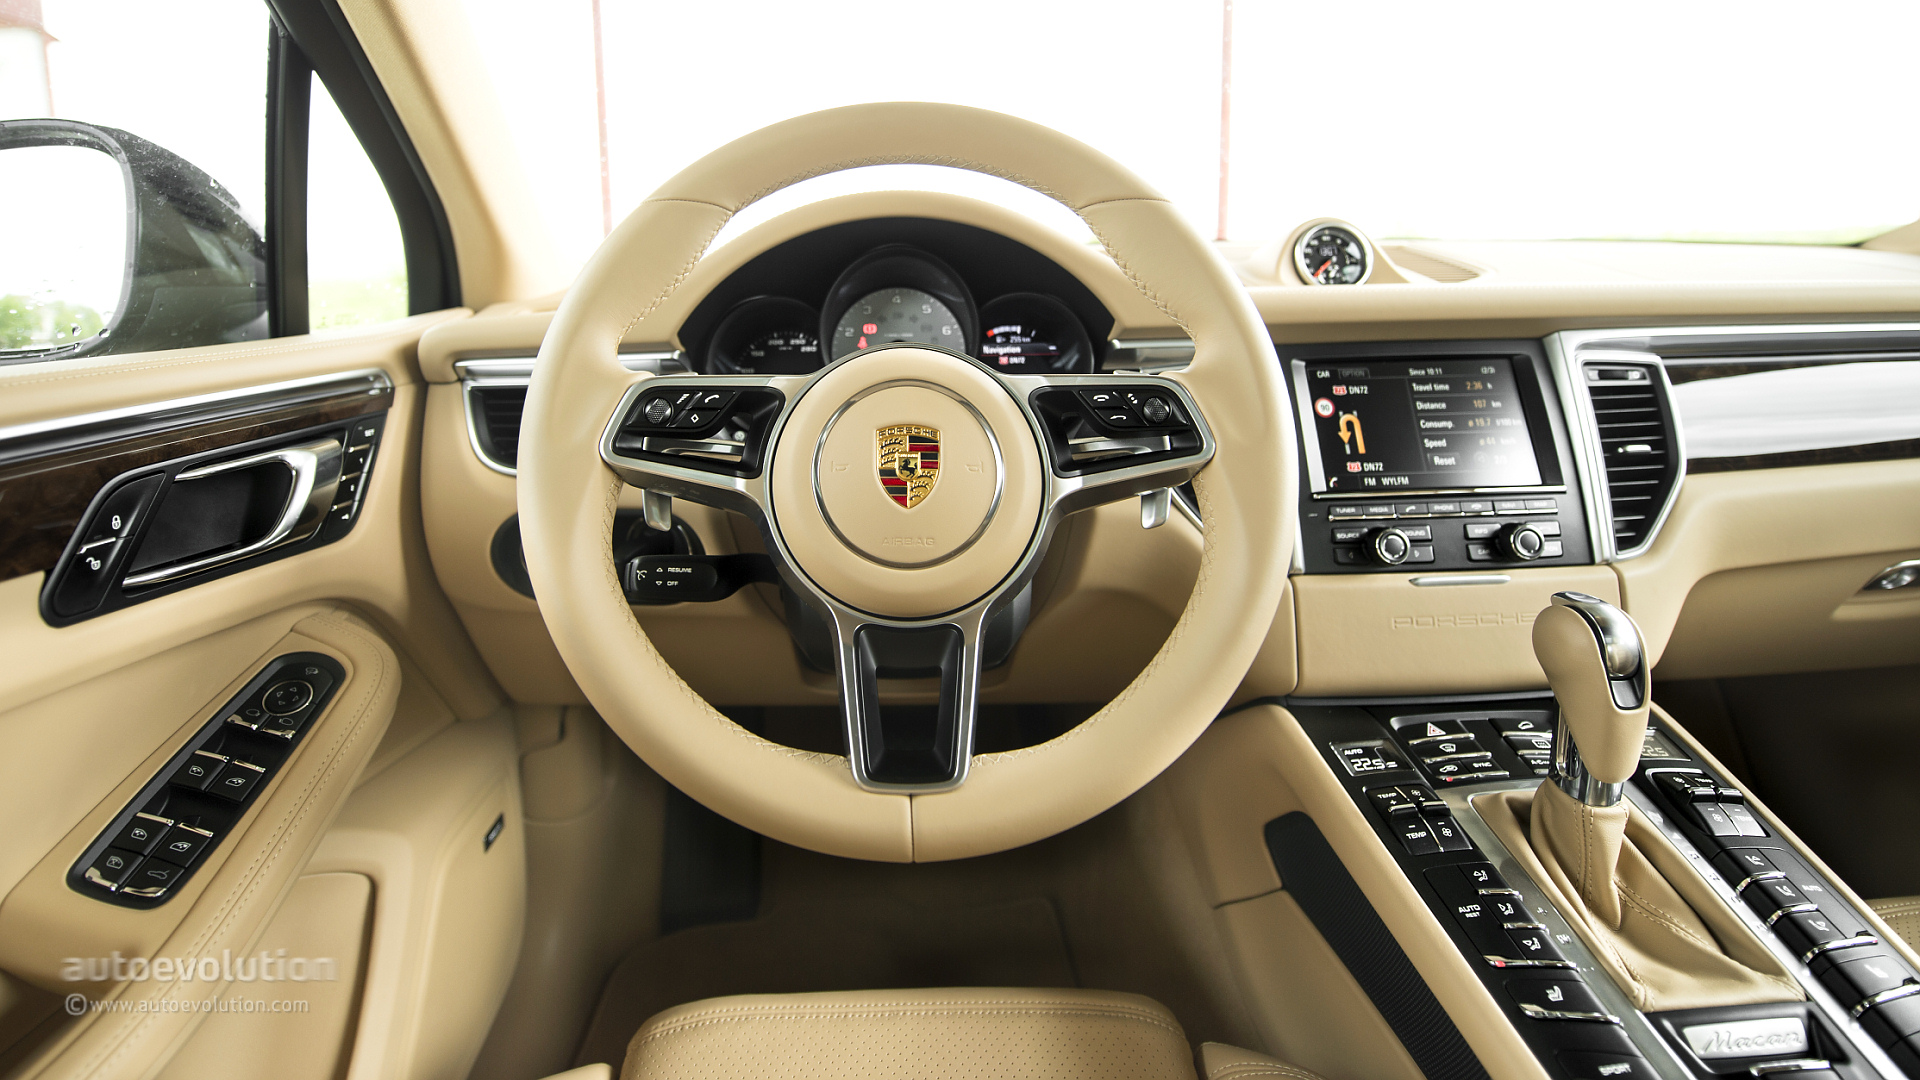 ... . We only receive three dials, like in the Boxster and Cayman